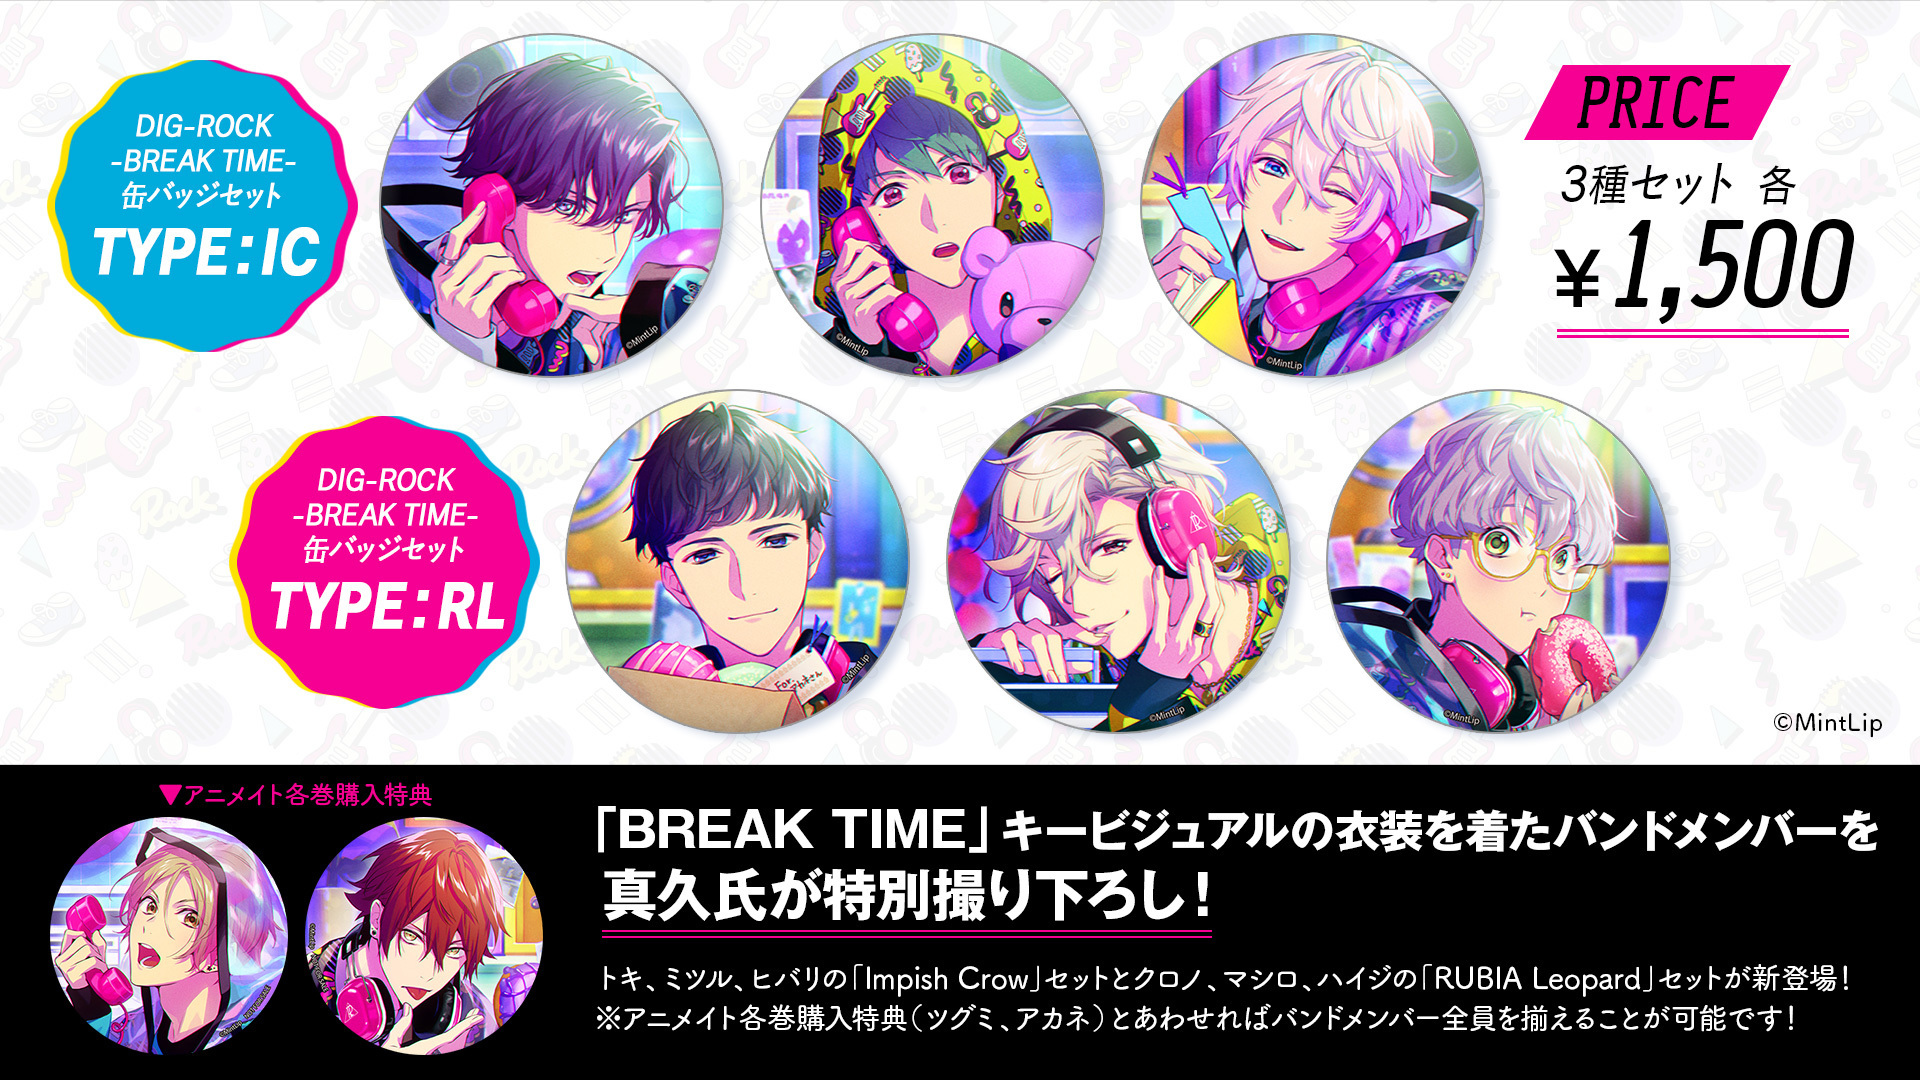 DIG-ROCK BREAK TIME 缶バッジセット Type:IC